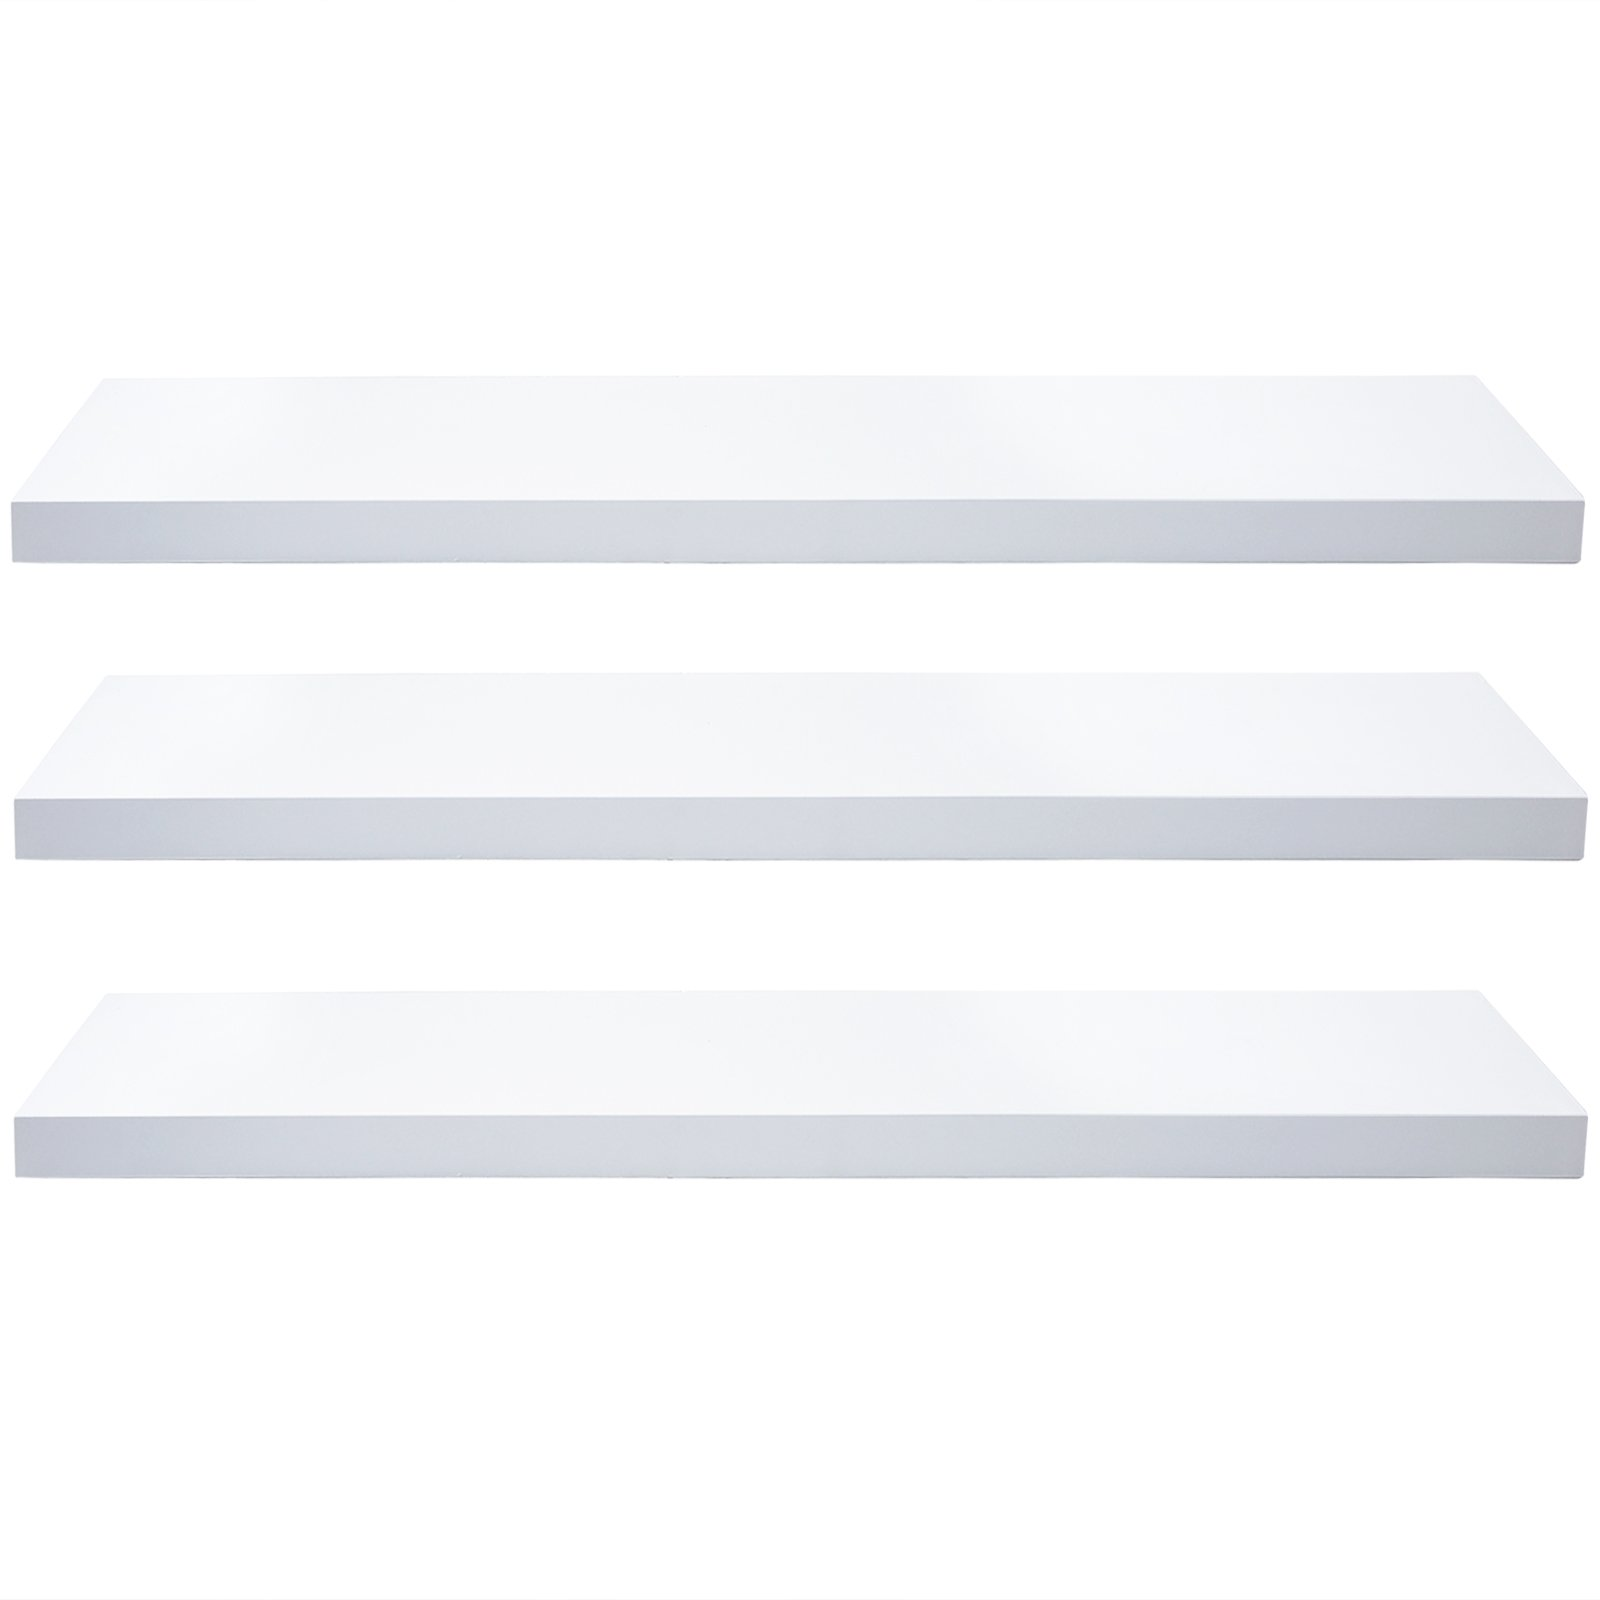 WOLTU Set of 3 Floating Wall Shelves MDF Wall Mount Wood Ledge Display and Organizer Rack with Hidden Brackets,39.37'' long, White, WS03whiS100-3